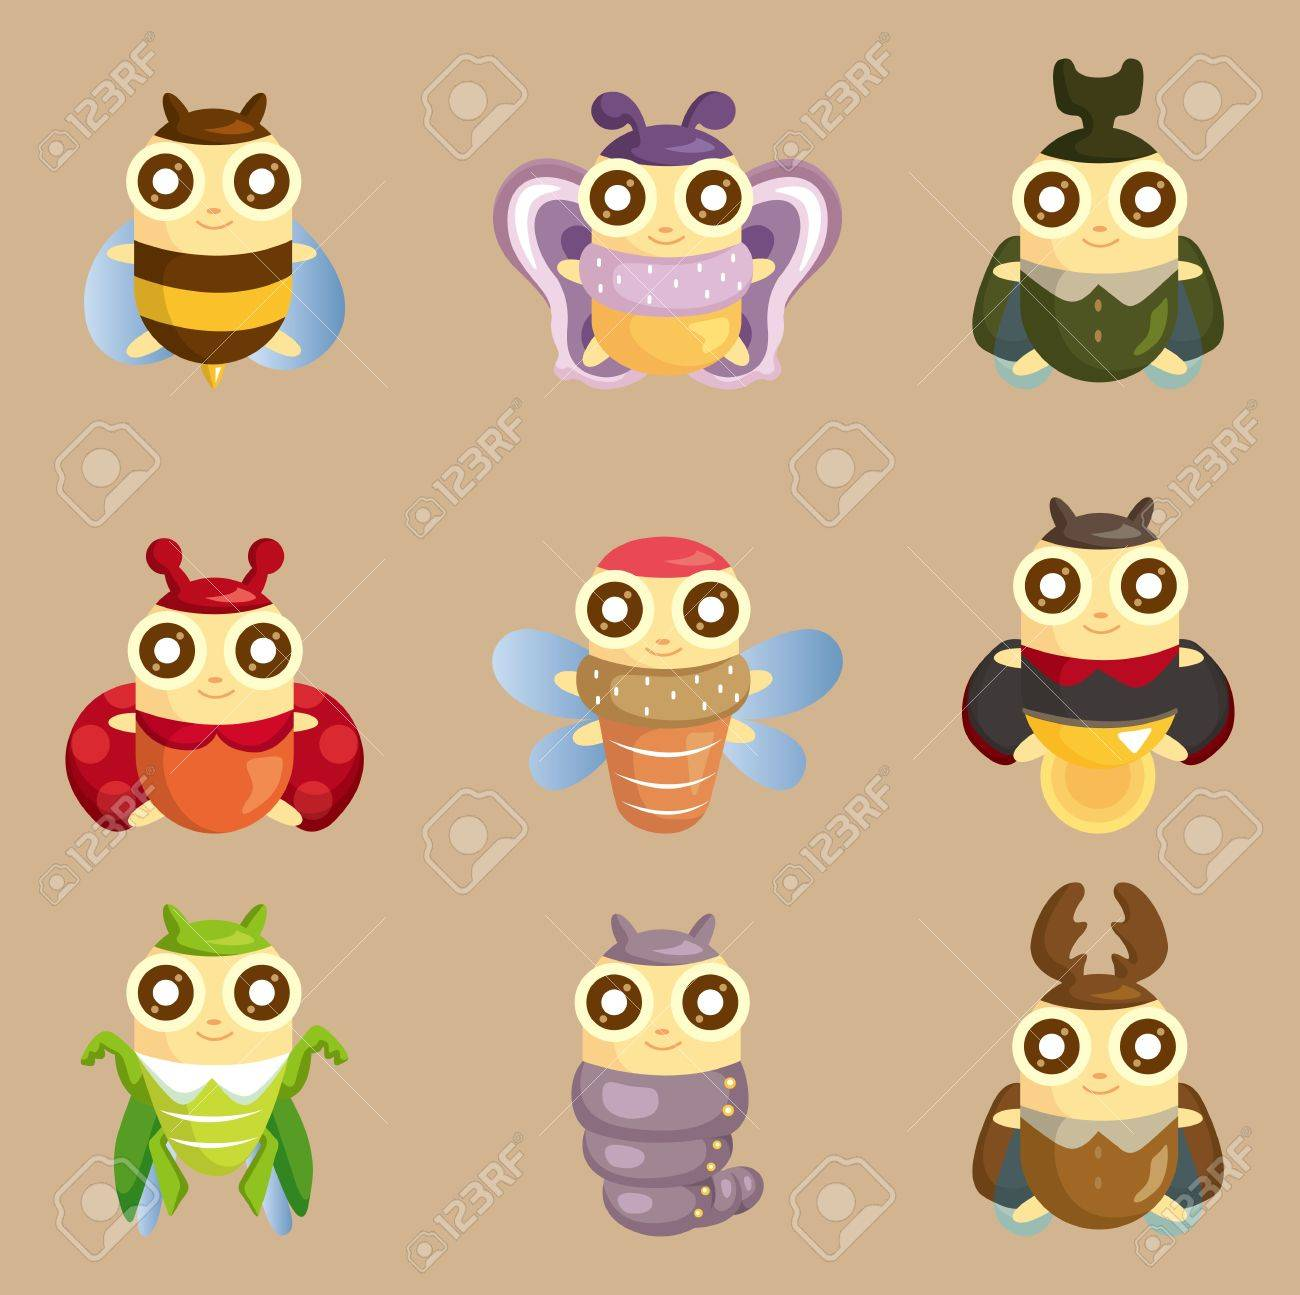 cartoon insect bug icon royalty free cliparts vectors and stock